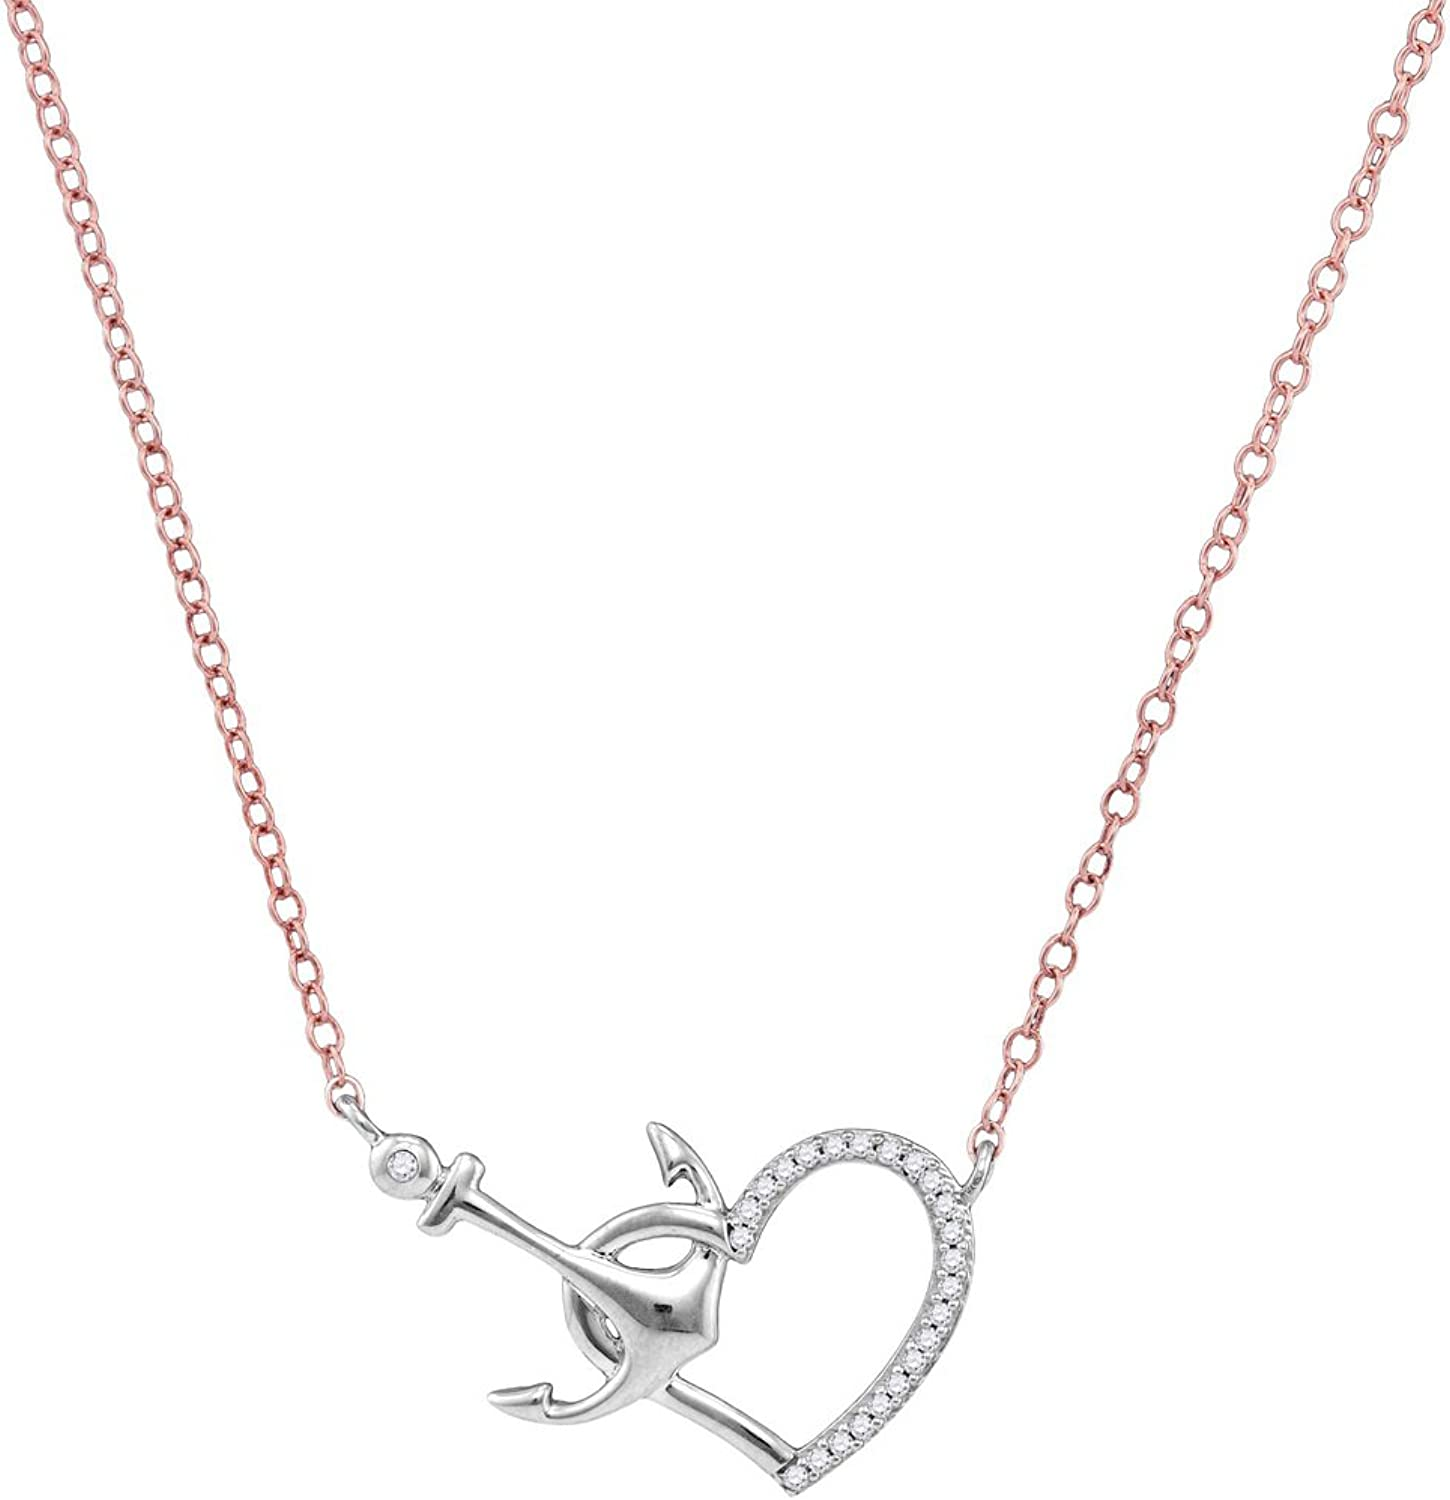 10kt White gold Womens Round Diamond Heart & Anchor Pendant Necklace 1 12 Cttw